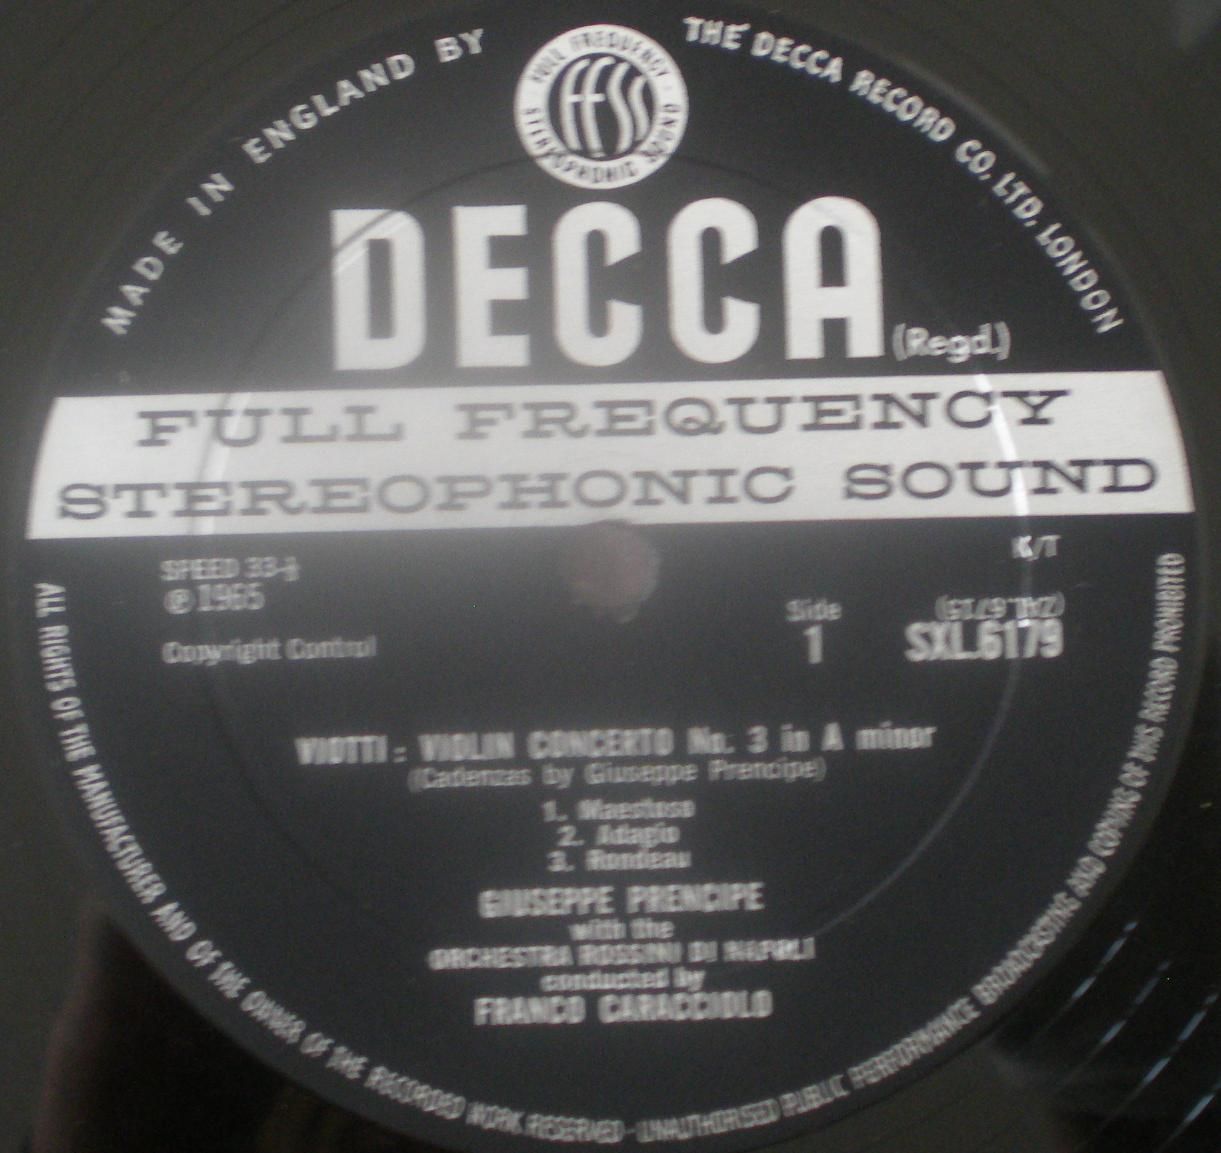 Decca Decca Records | Decca Label | The Decca Record Label